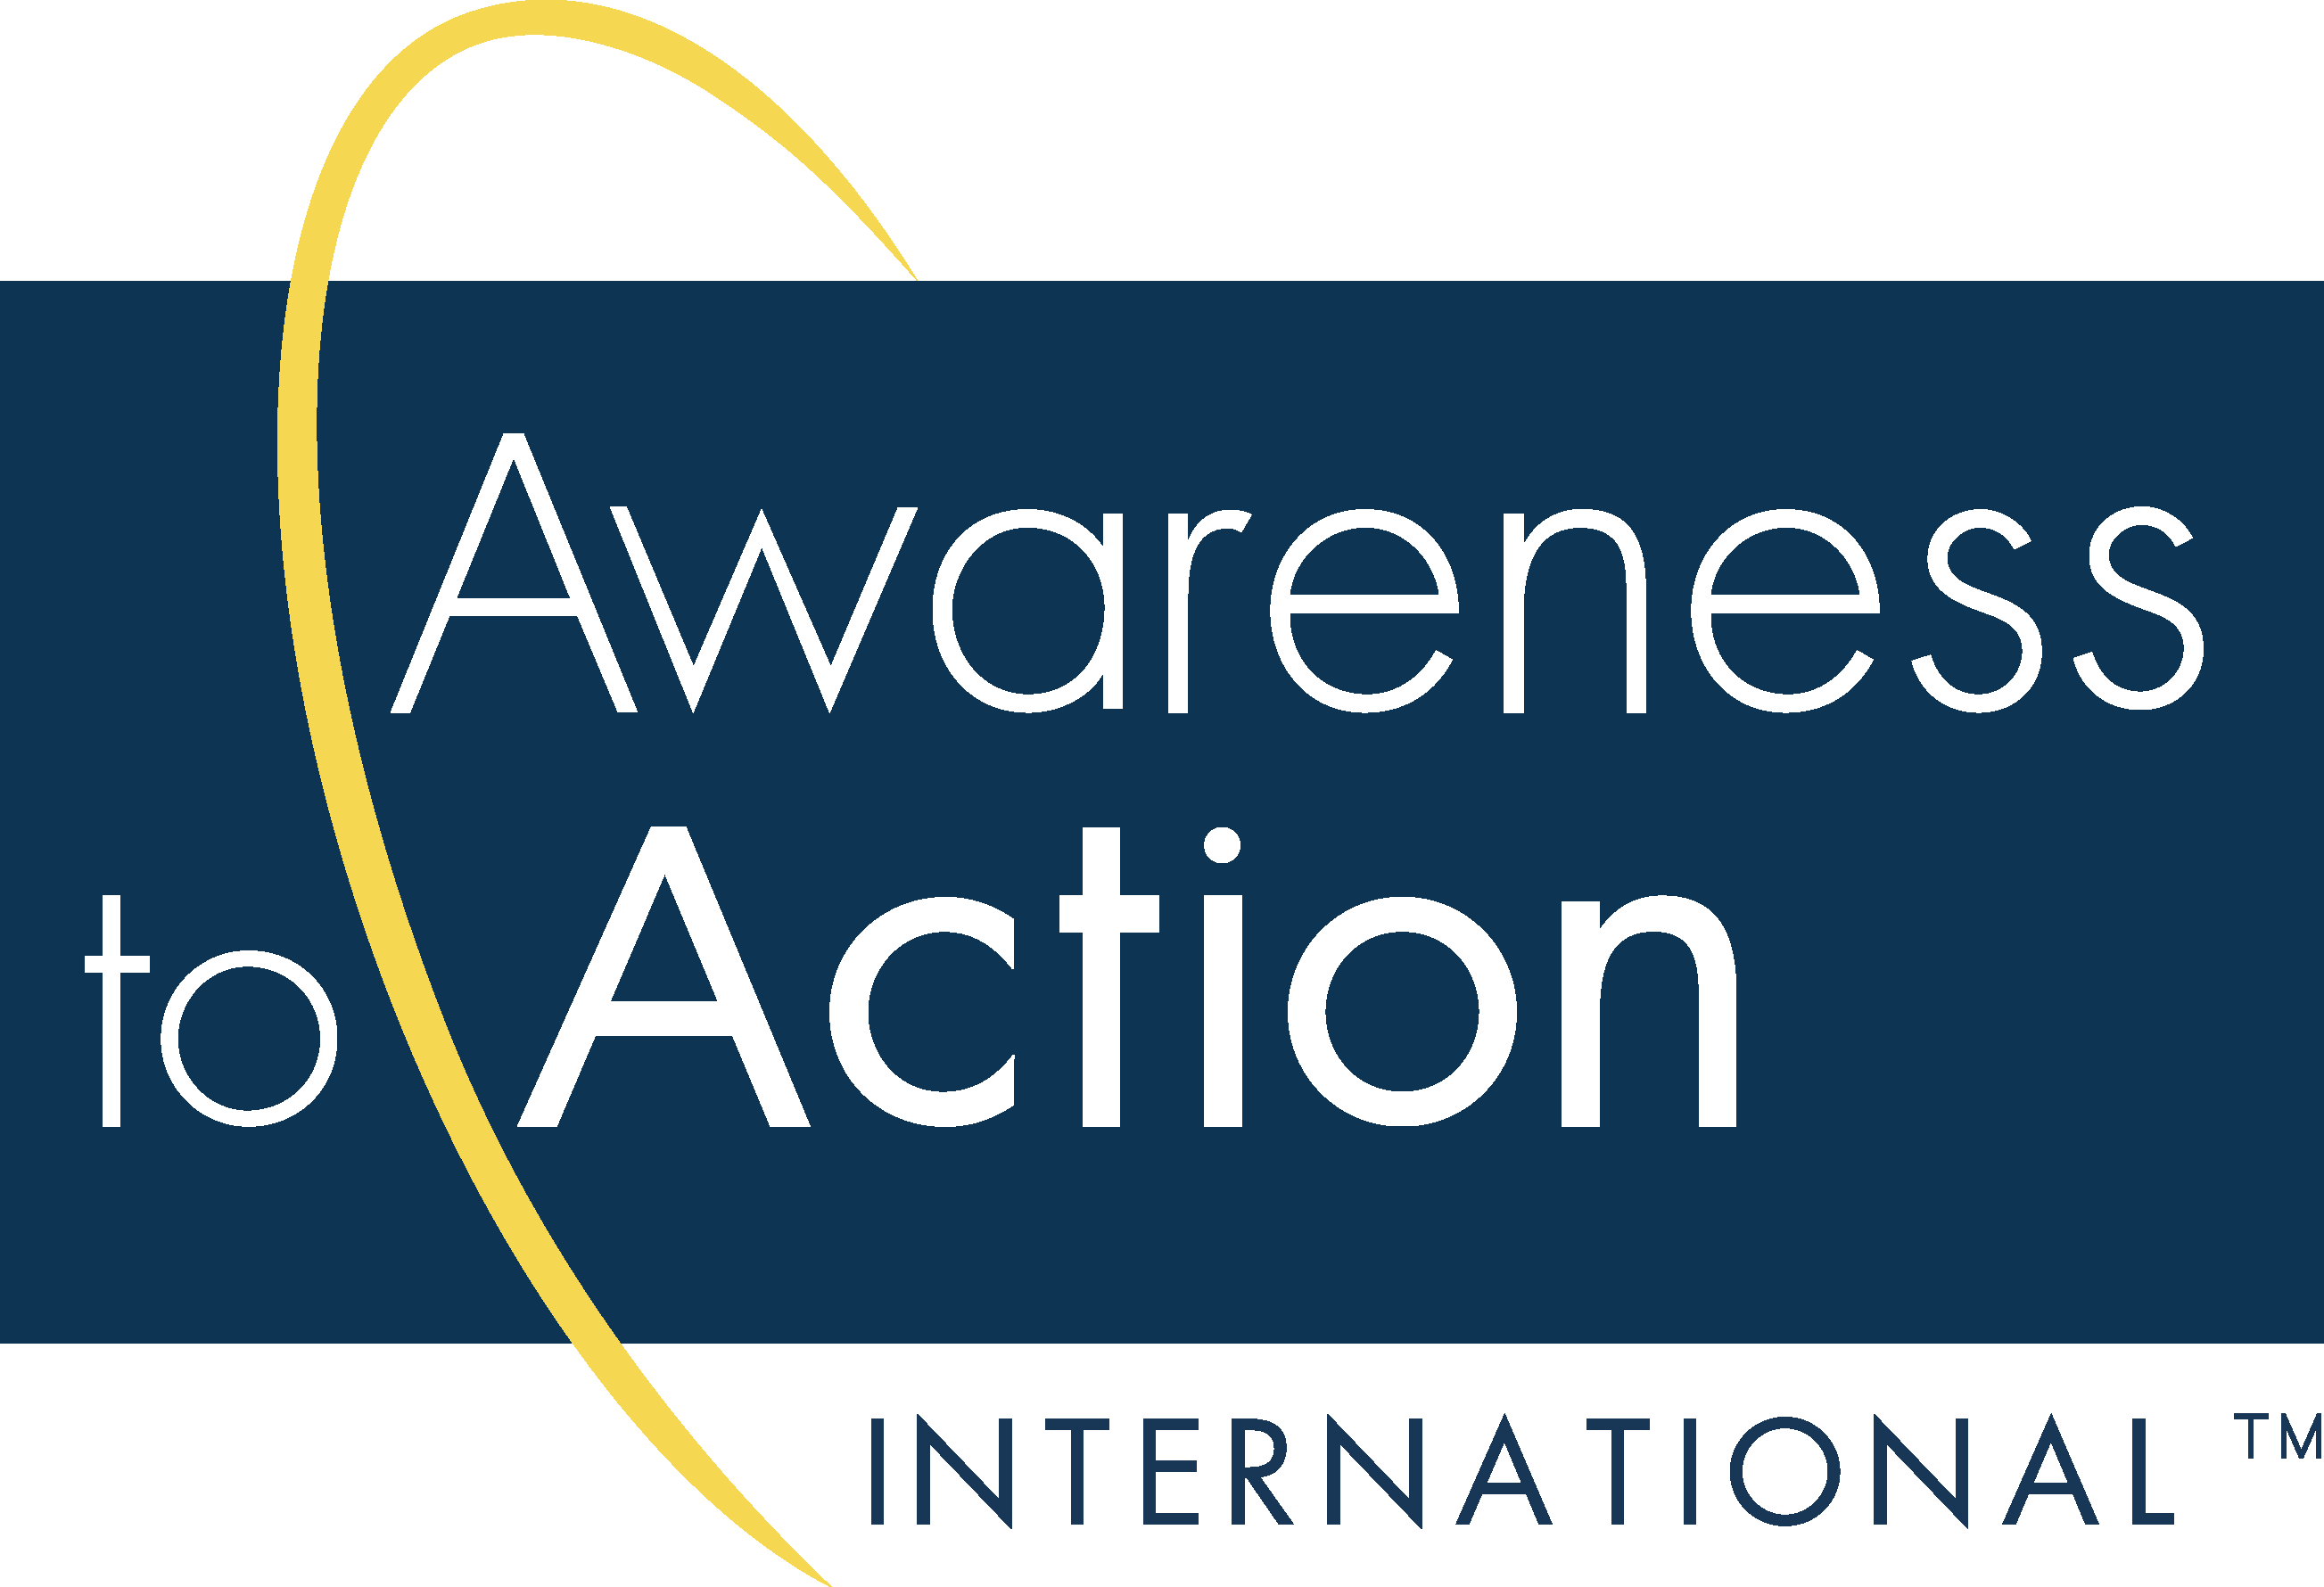 Awareness to Action International